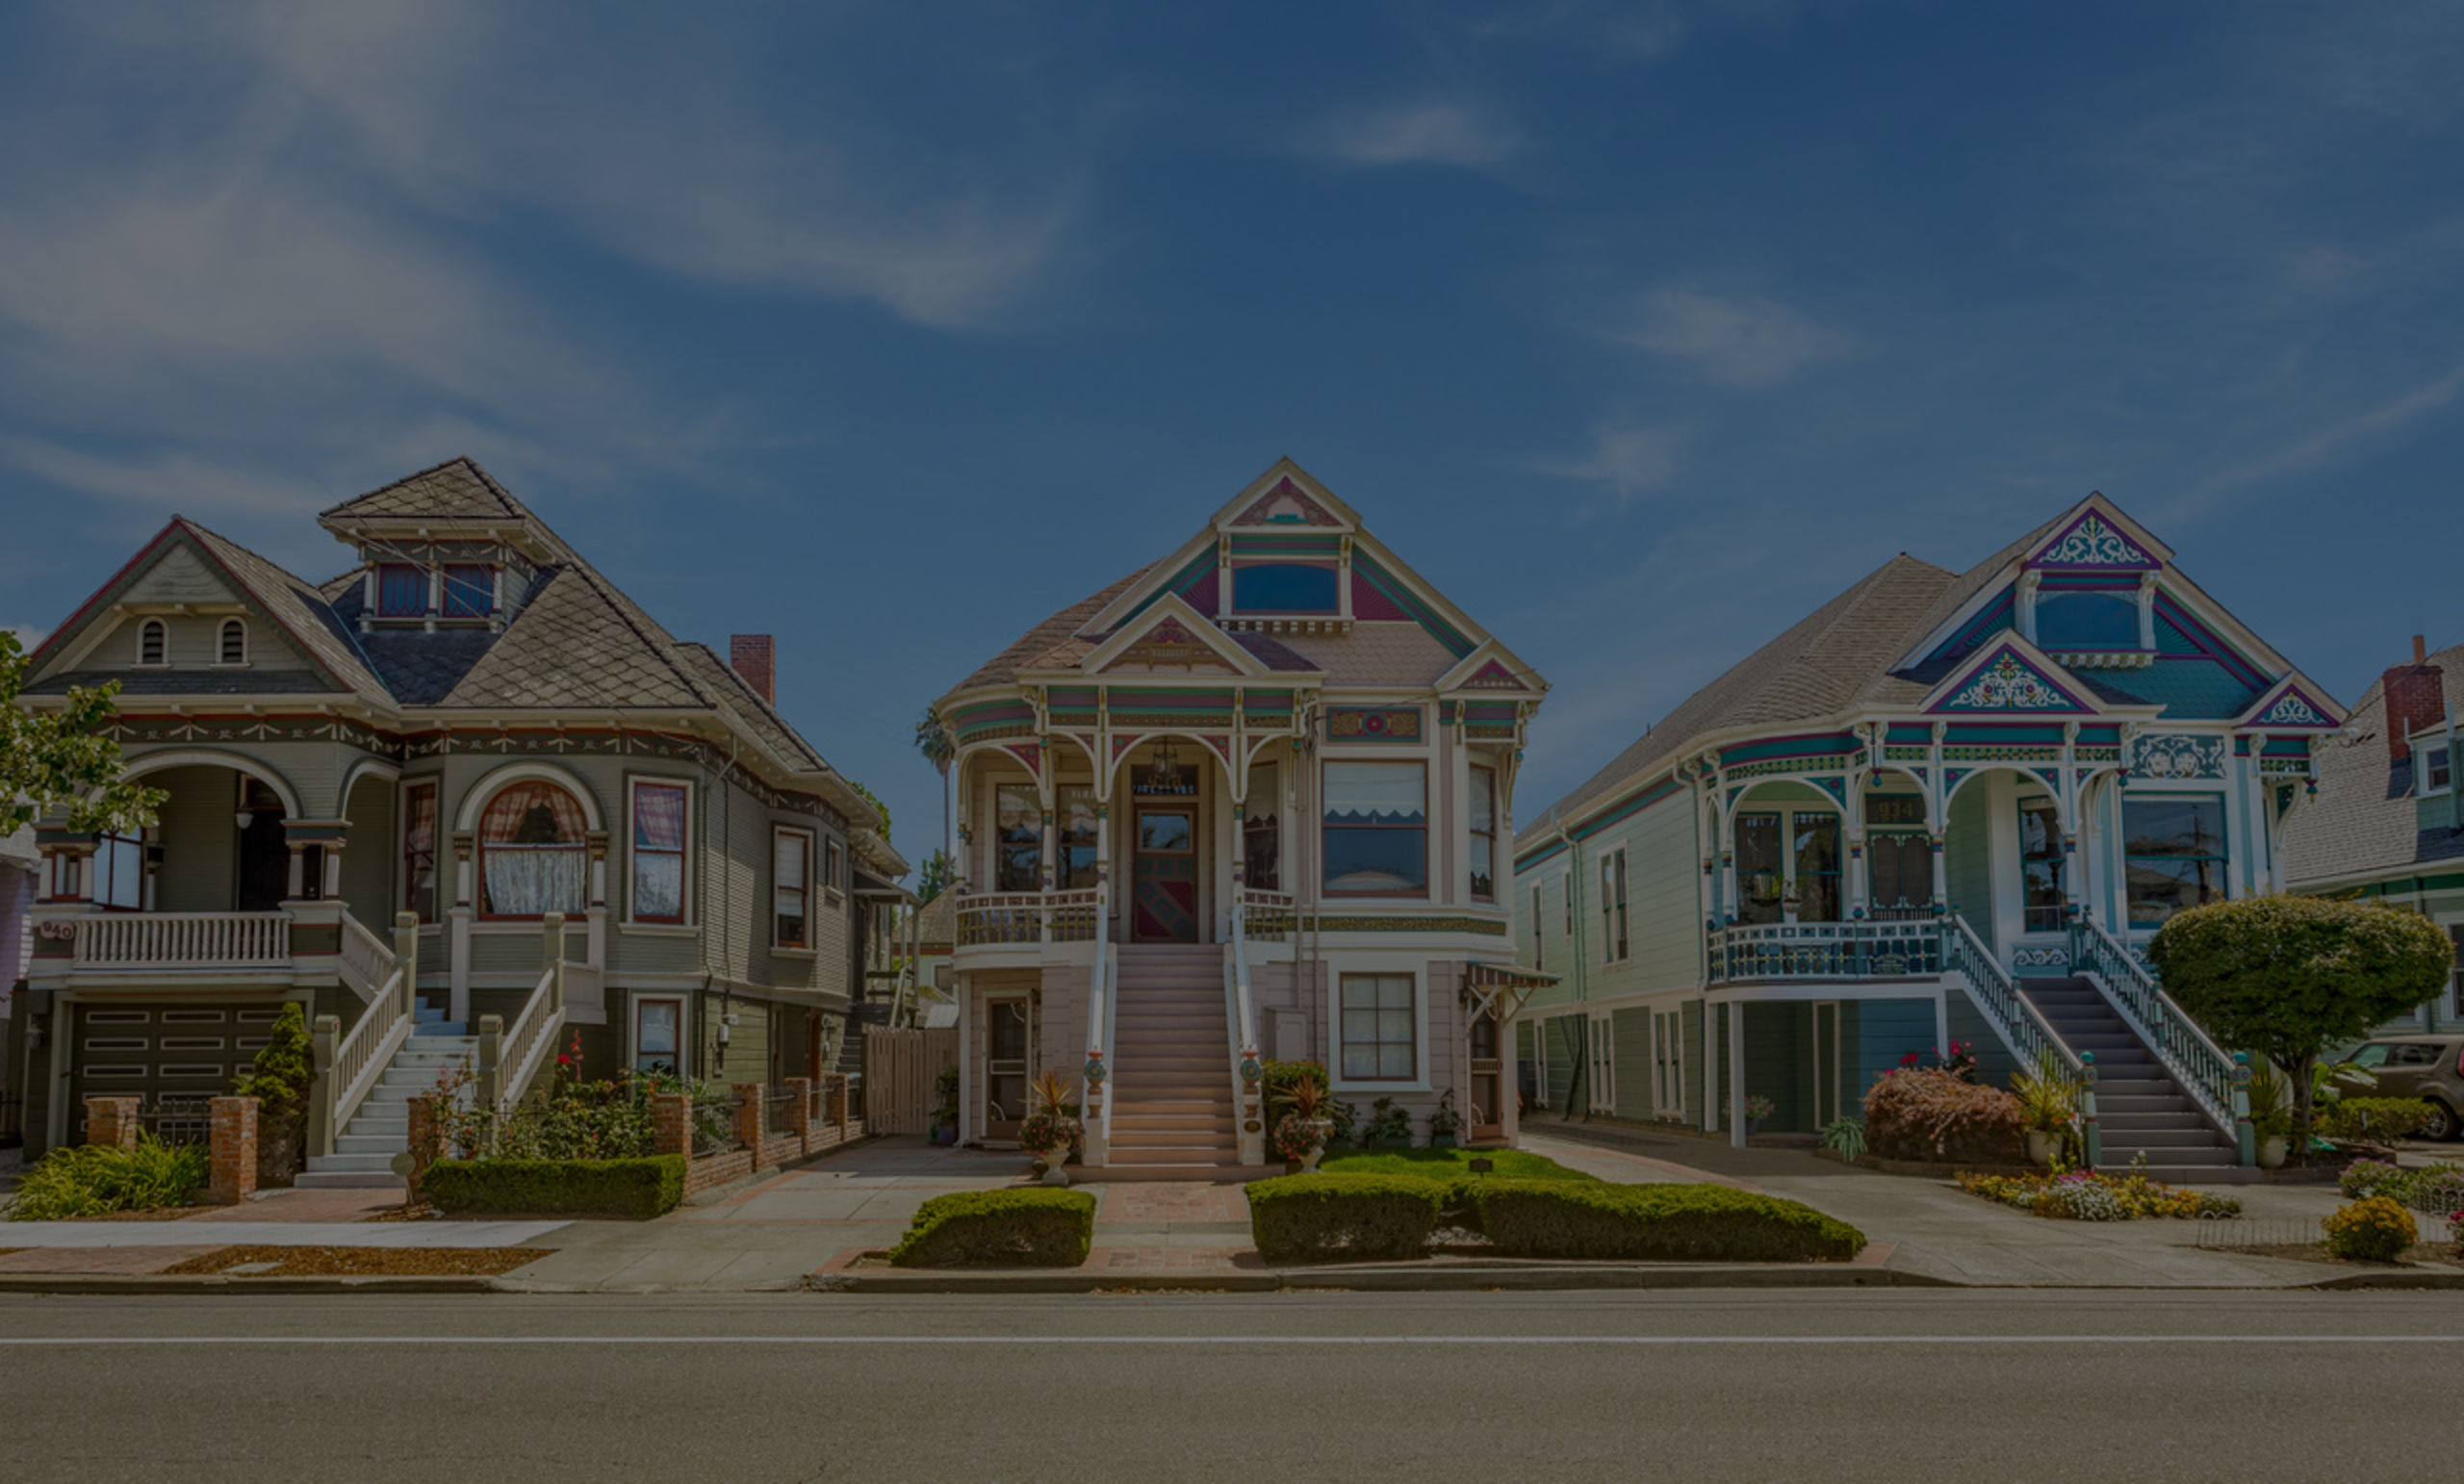 Queen Anne Victorian trio on Santa Clara